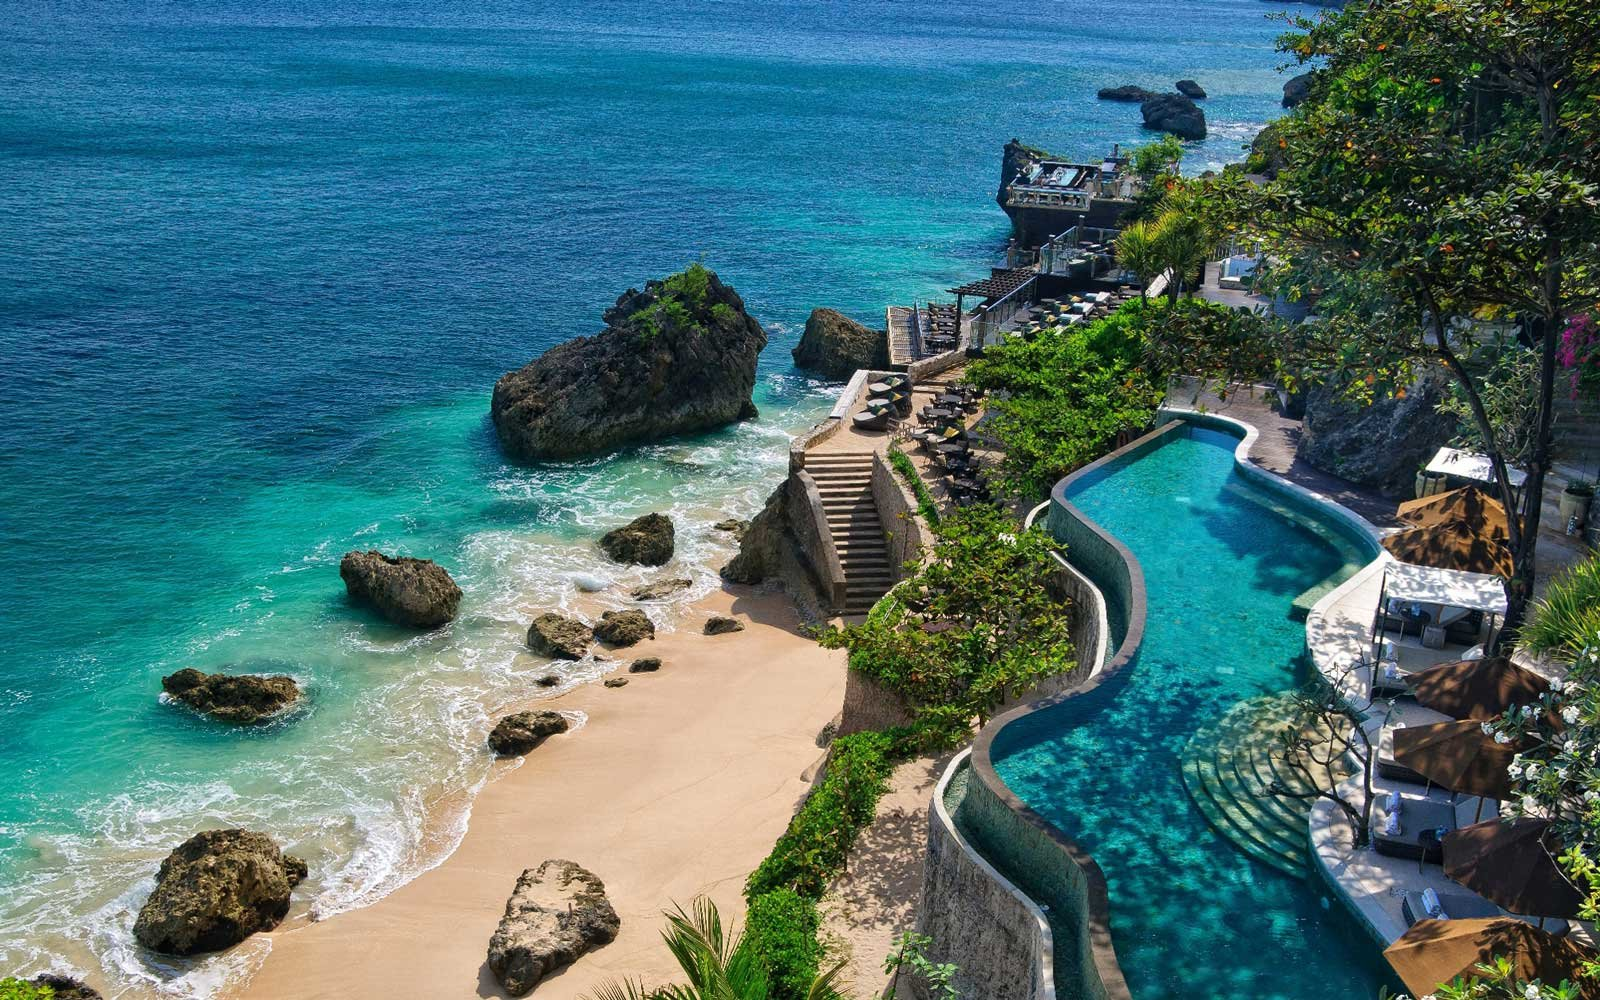 View of the Ayana Resort in Bali